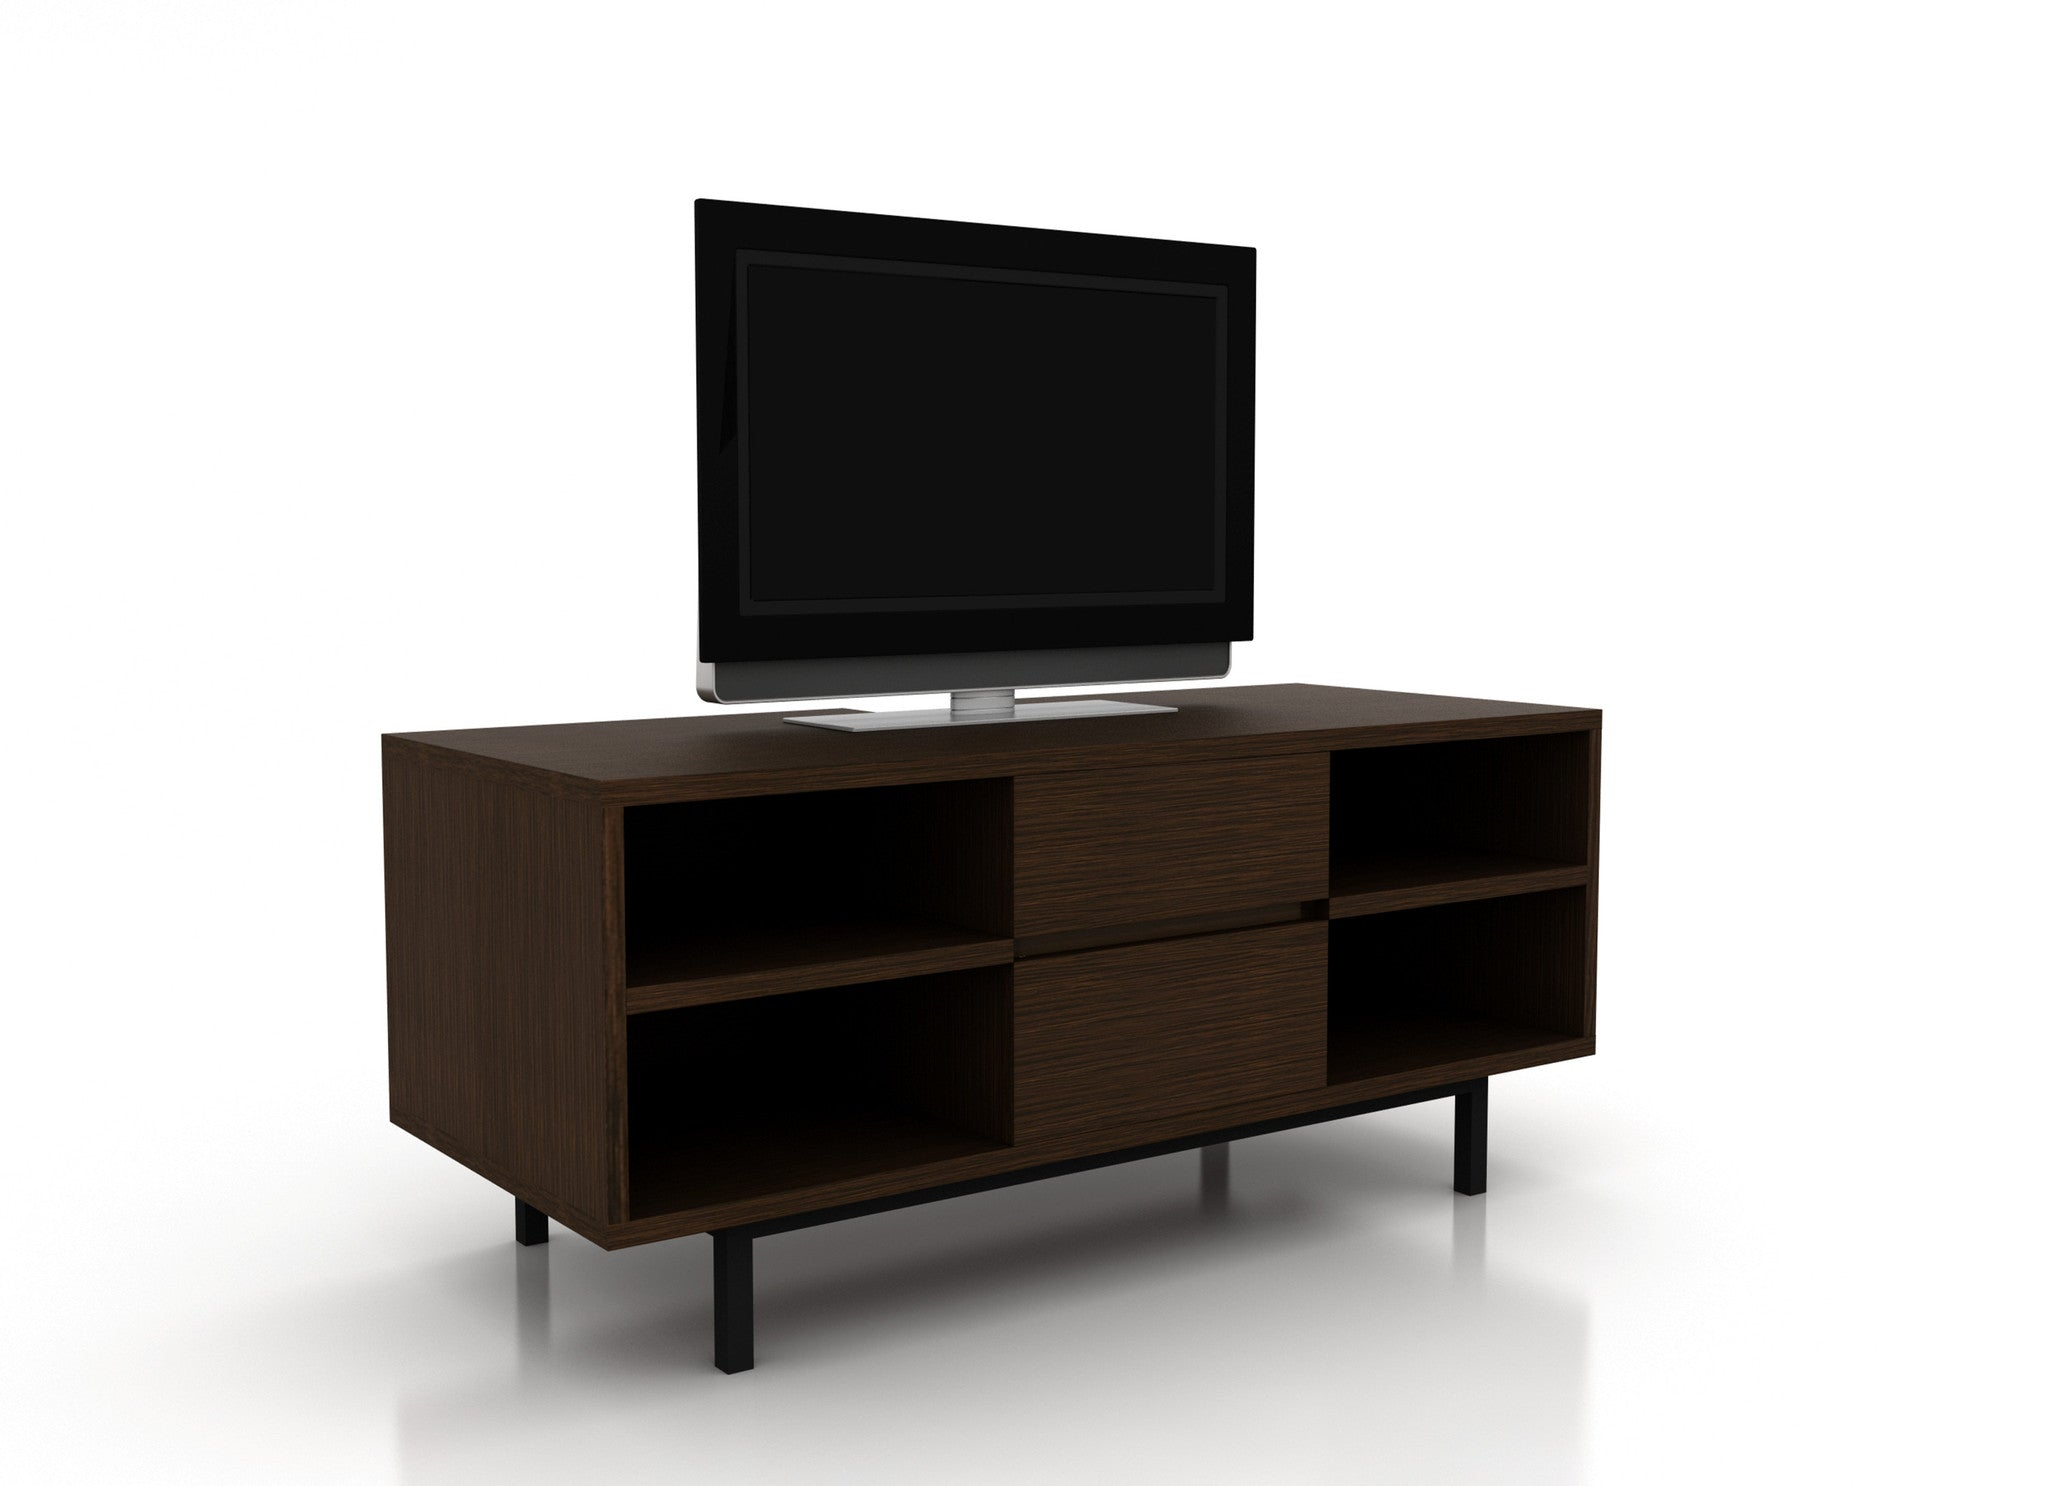 Muebles de TV Mexico DF Madera Wengue Front Polimob